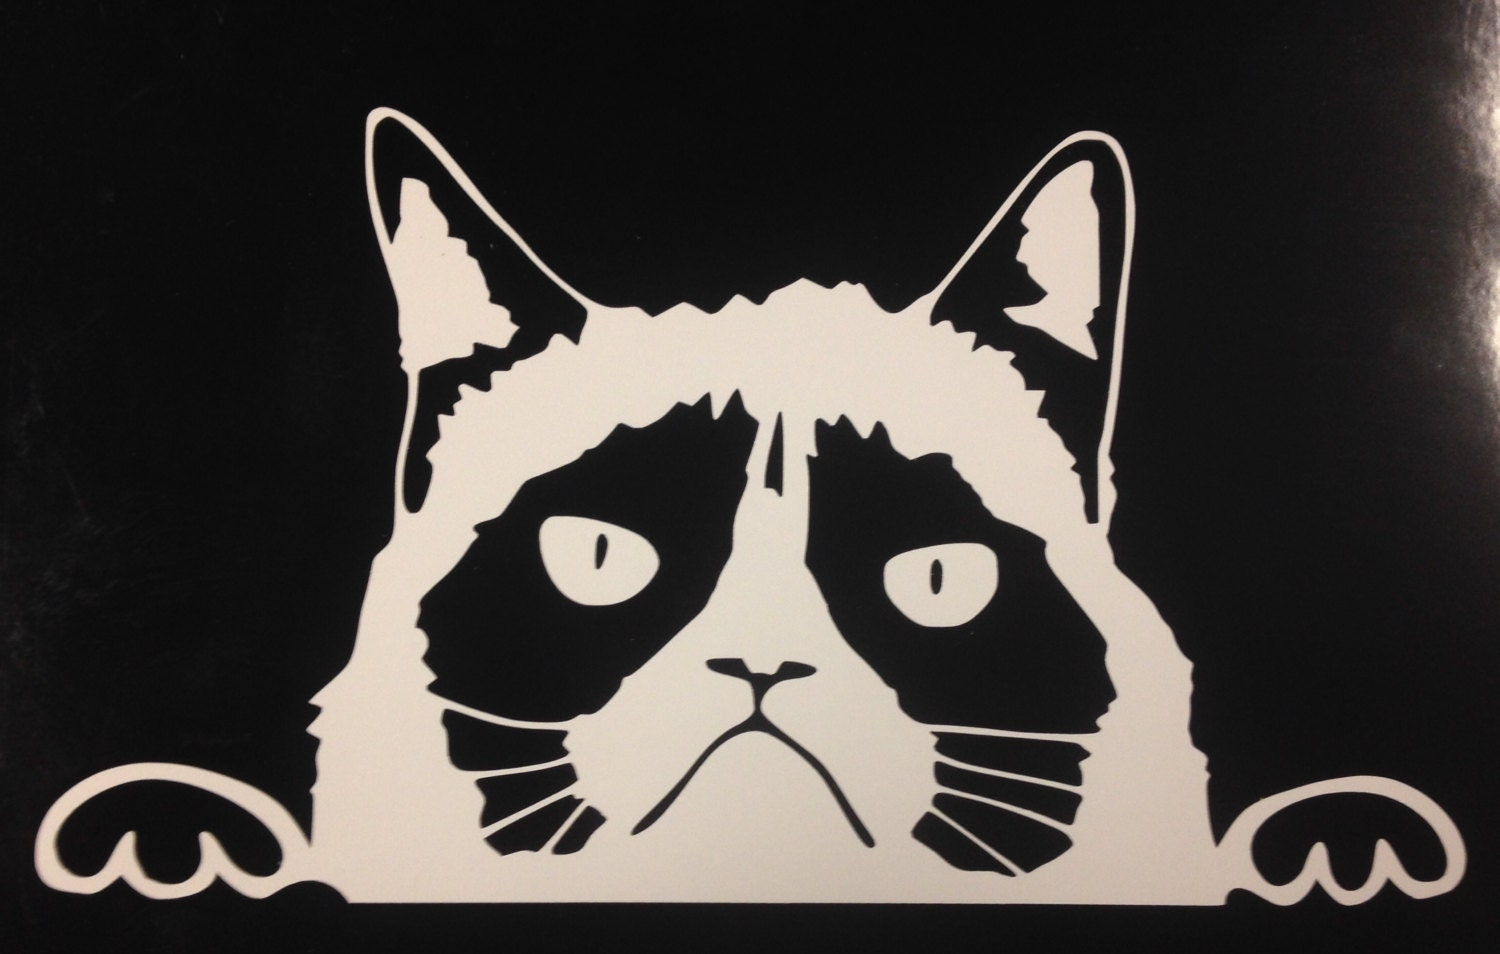 Peeking Cat W Vinyl Decal Sticker CarTruck LaptopNetbook - Cat custom vinyl decals for car windows